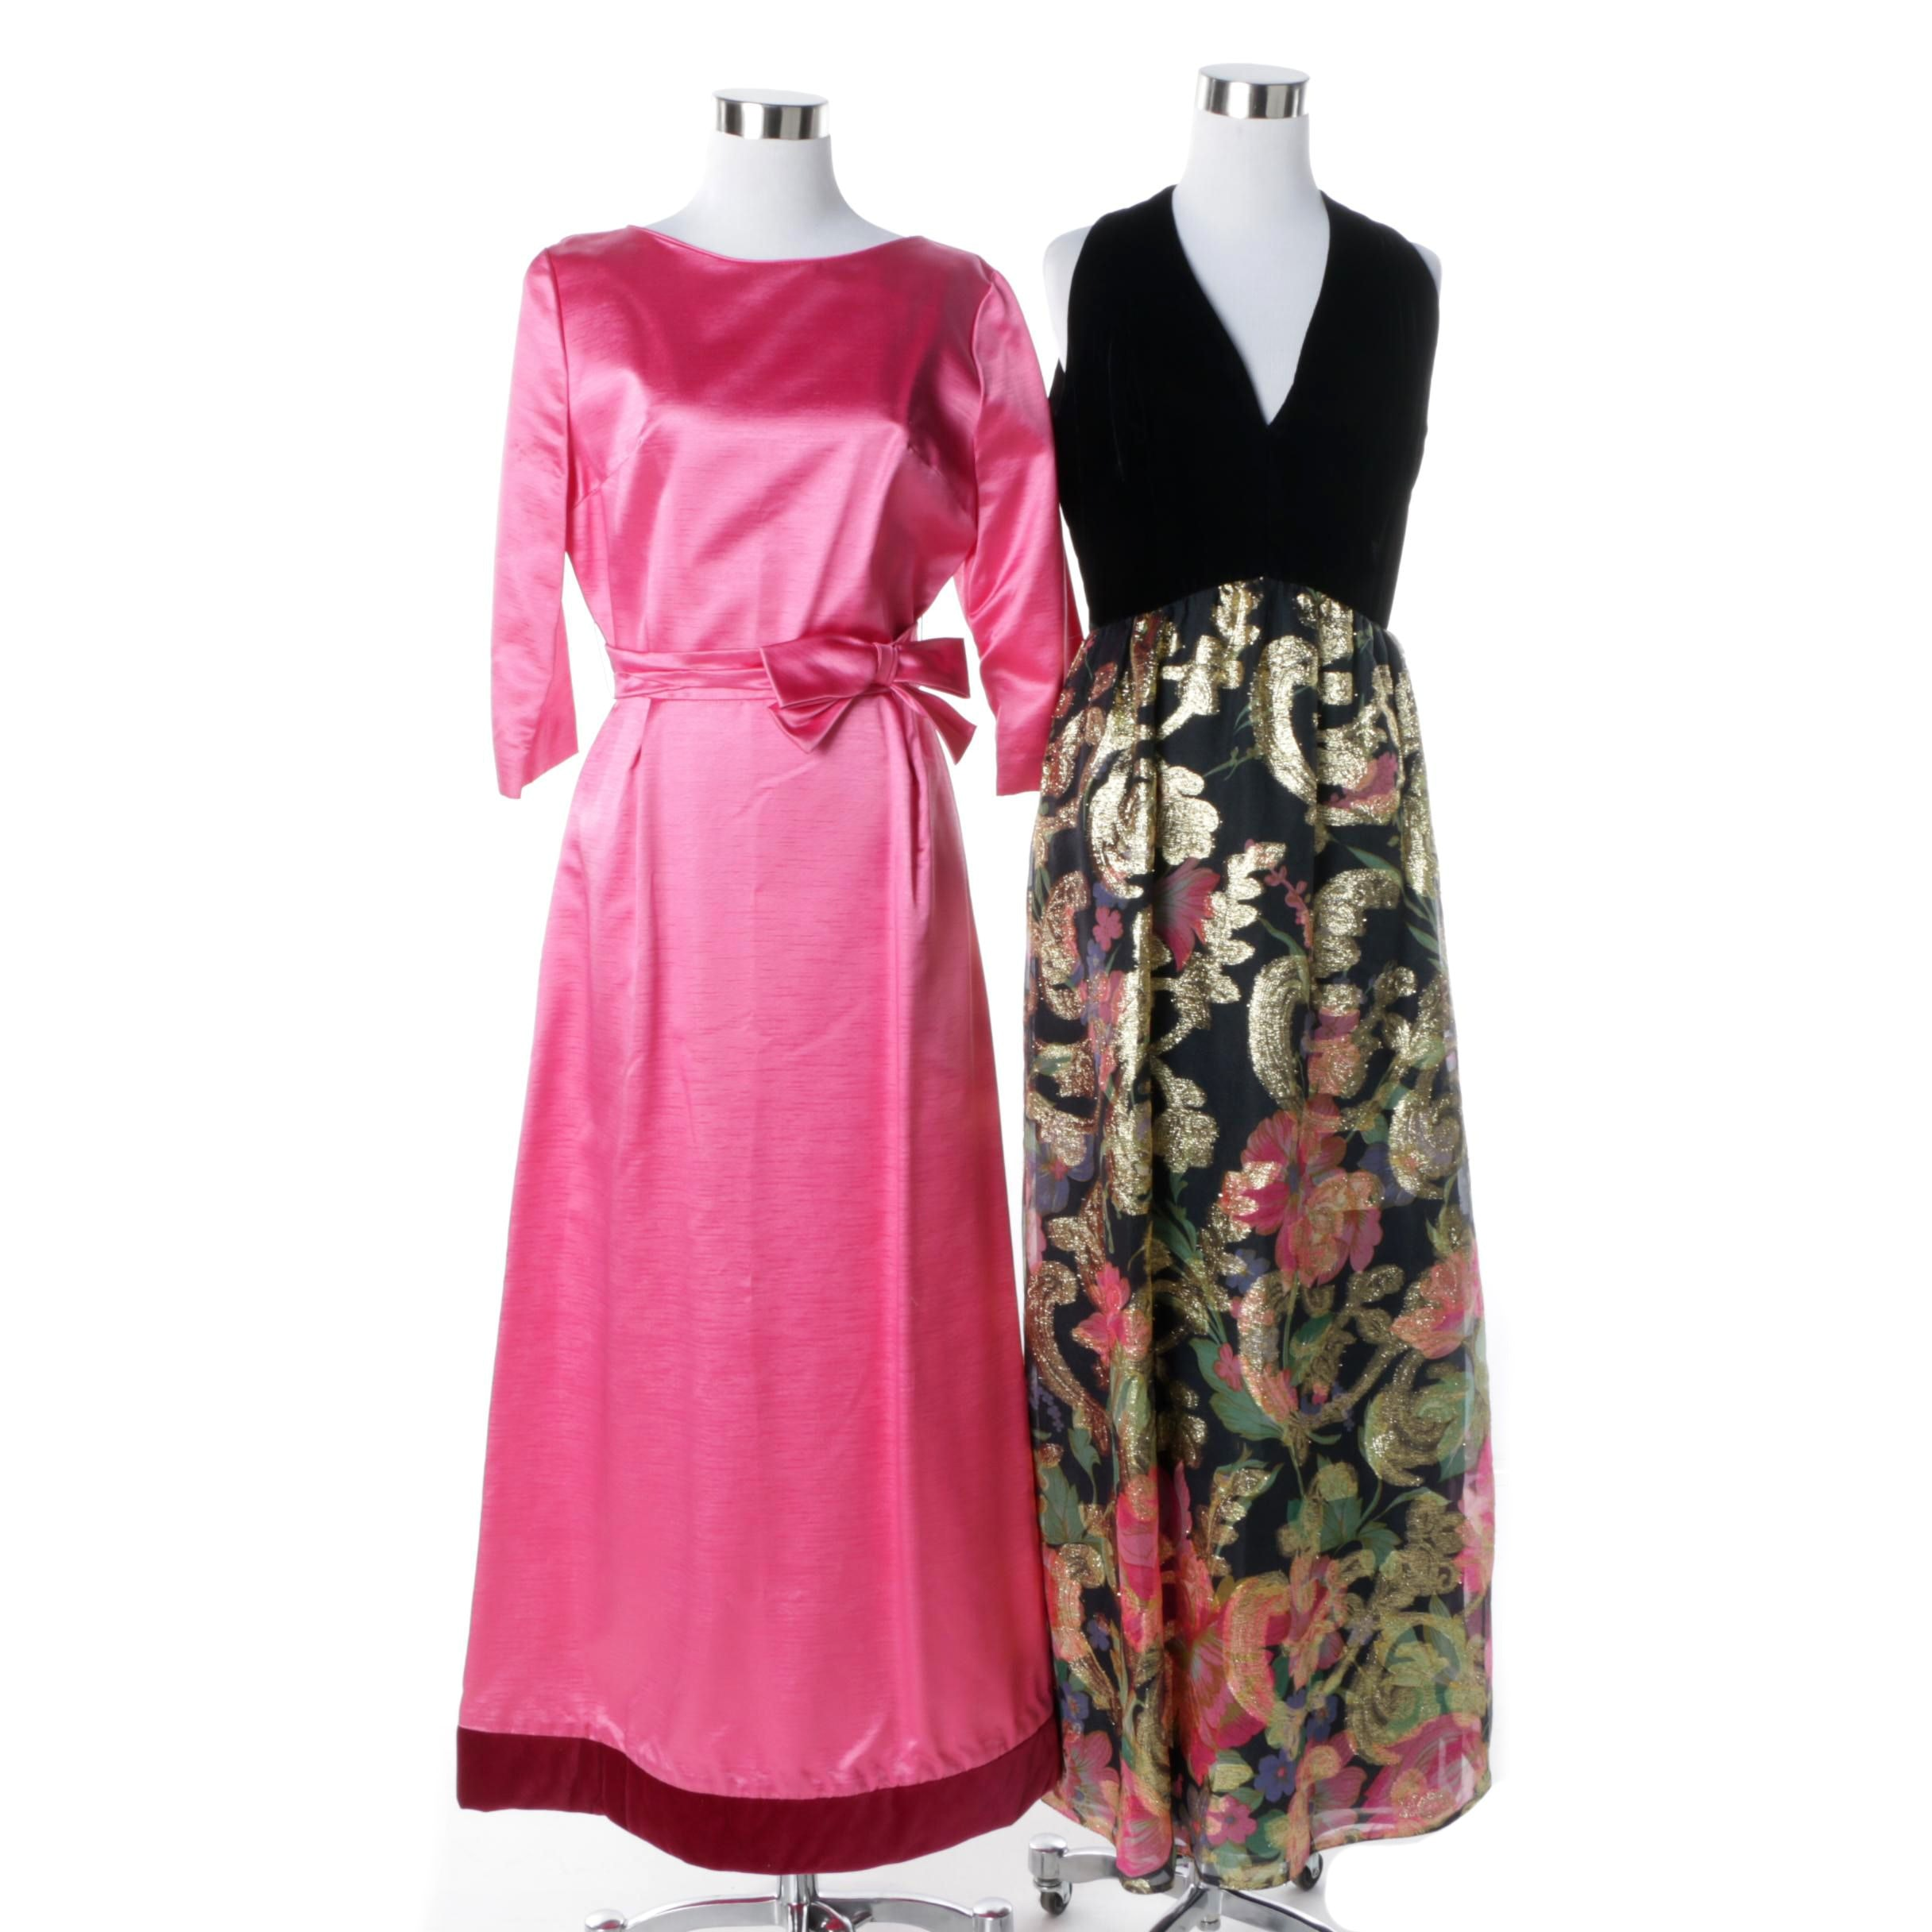 1960s Fuschia and Black Floral Evening Dresses with Velvet, Metallic Accents